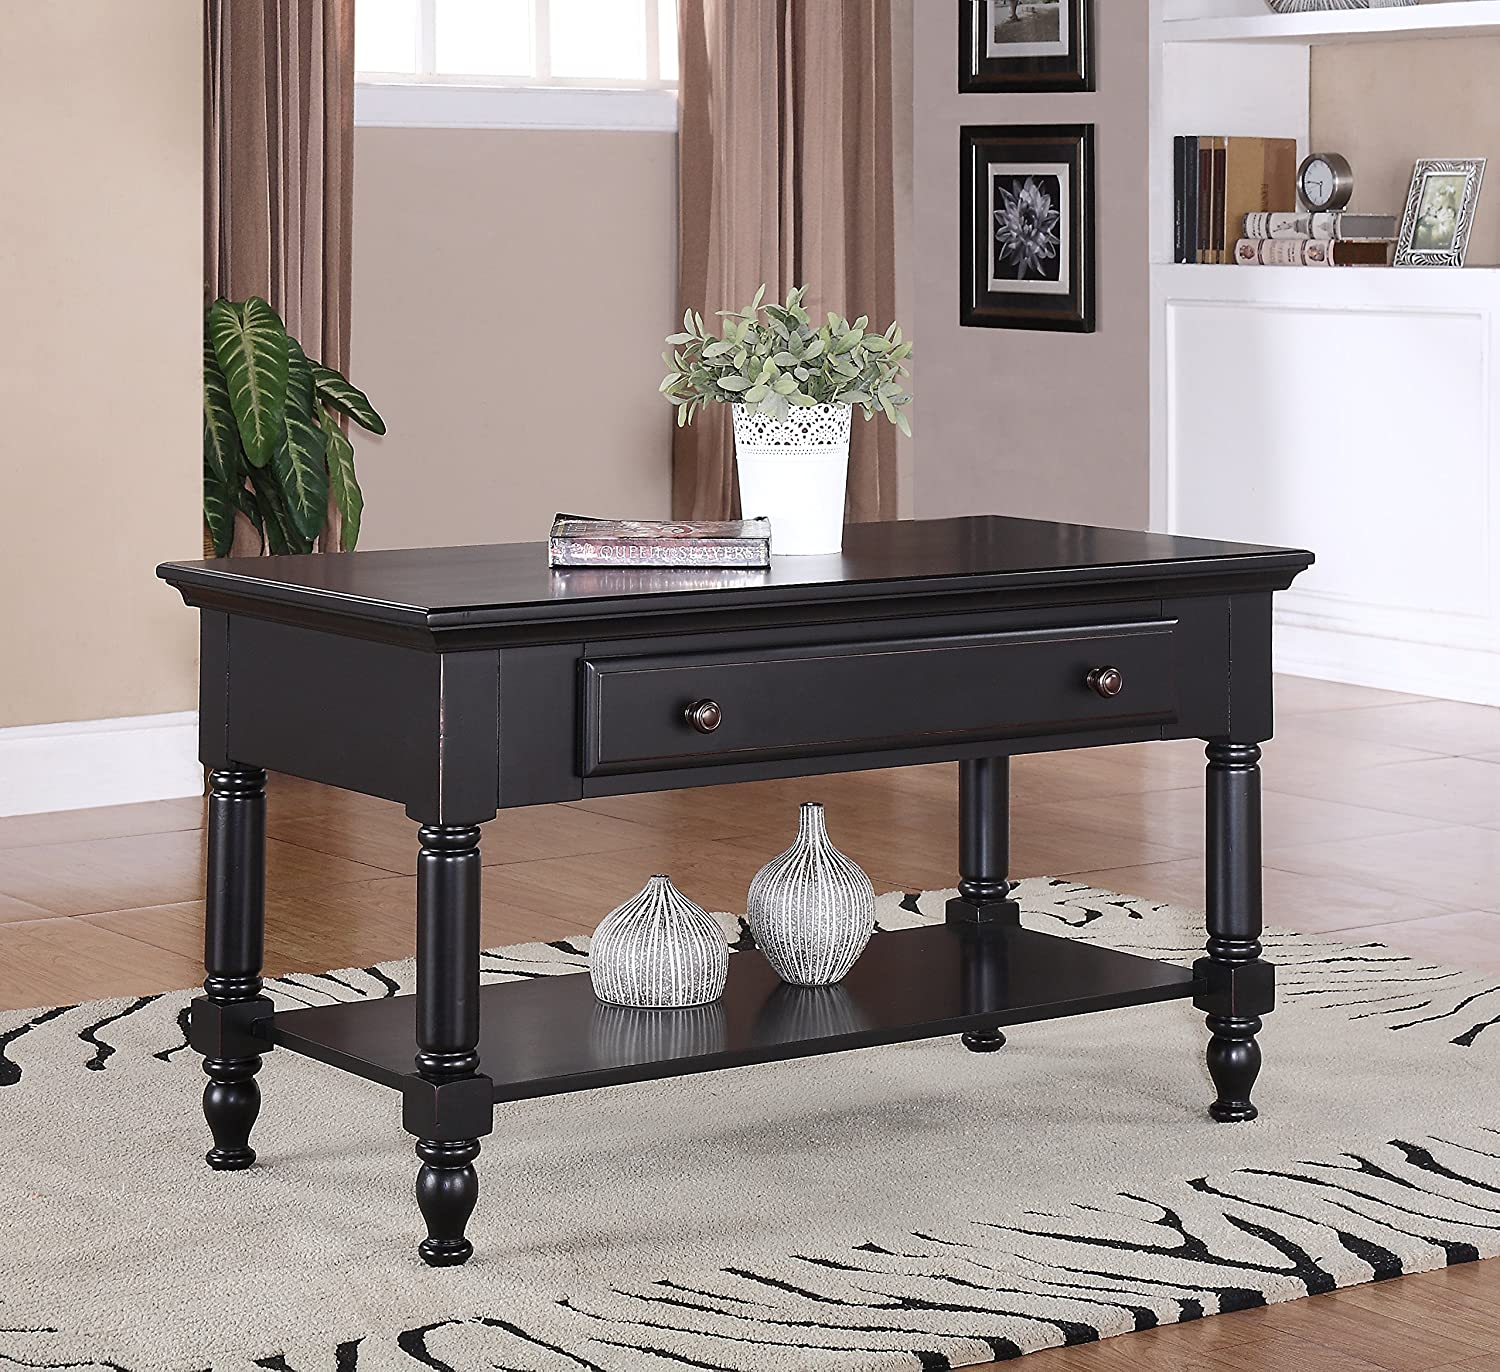 Amazon Renovations by Thomasville Westmont Coffee Table